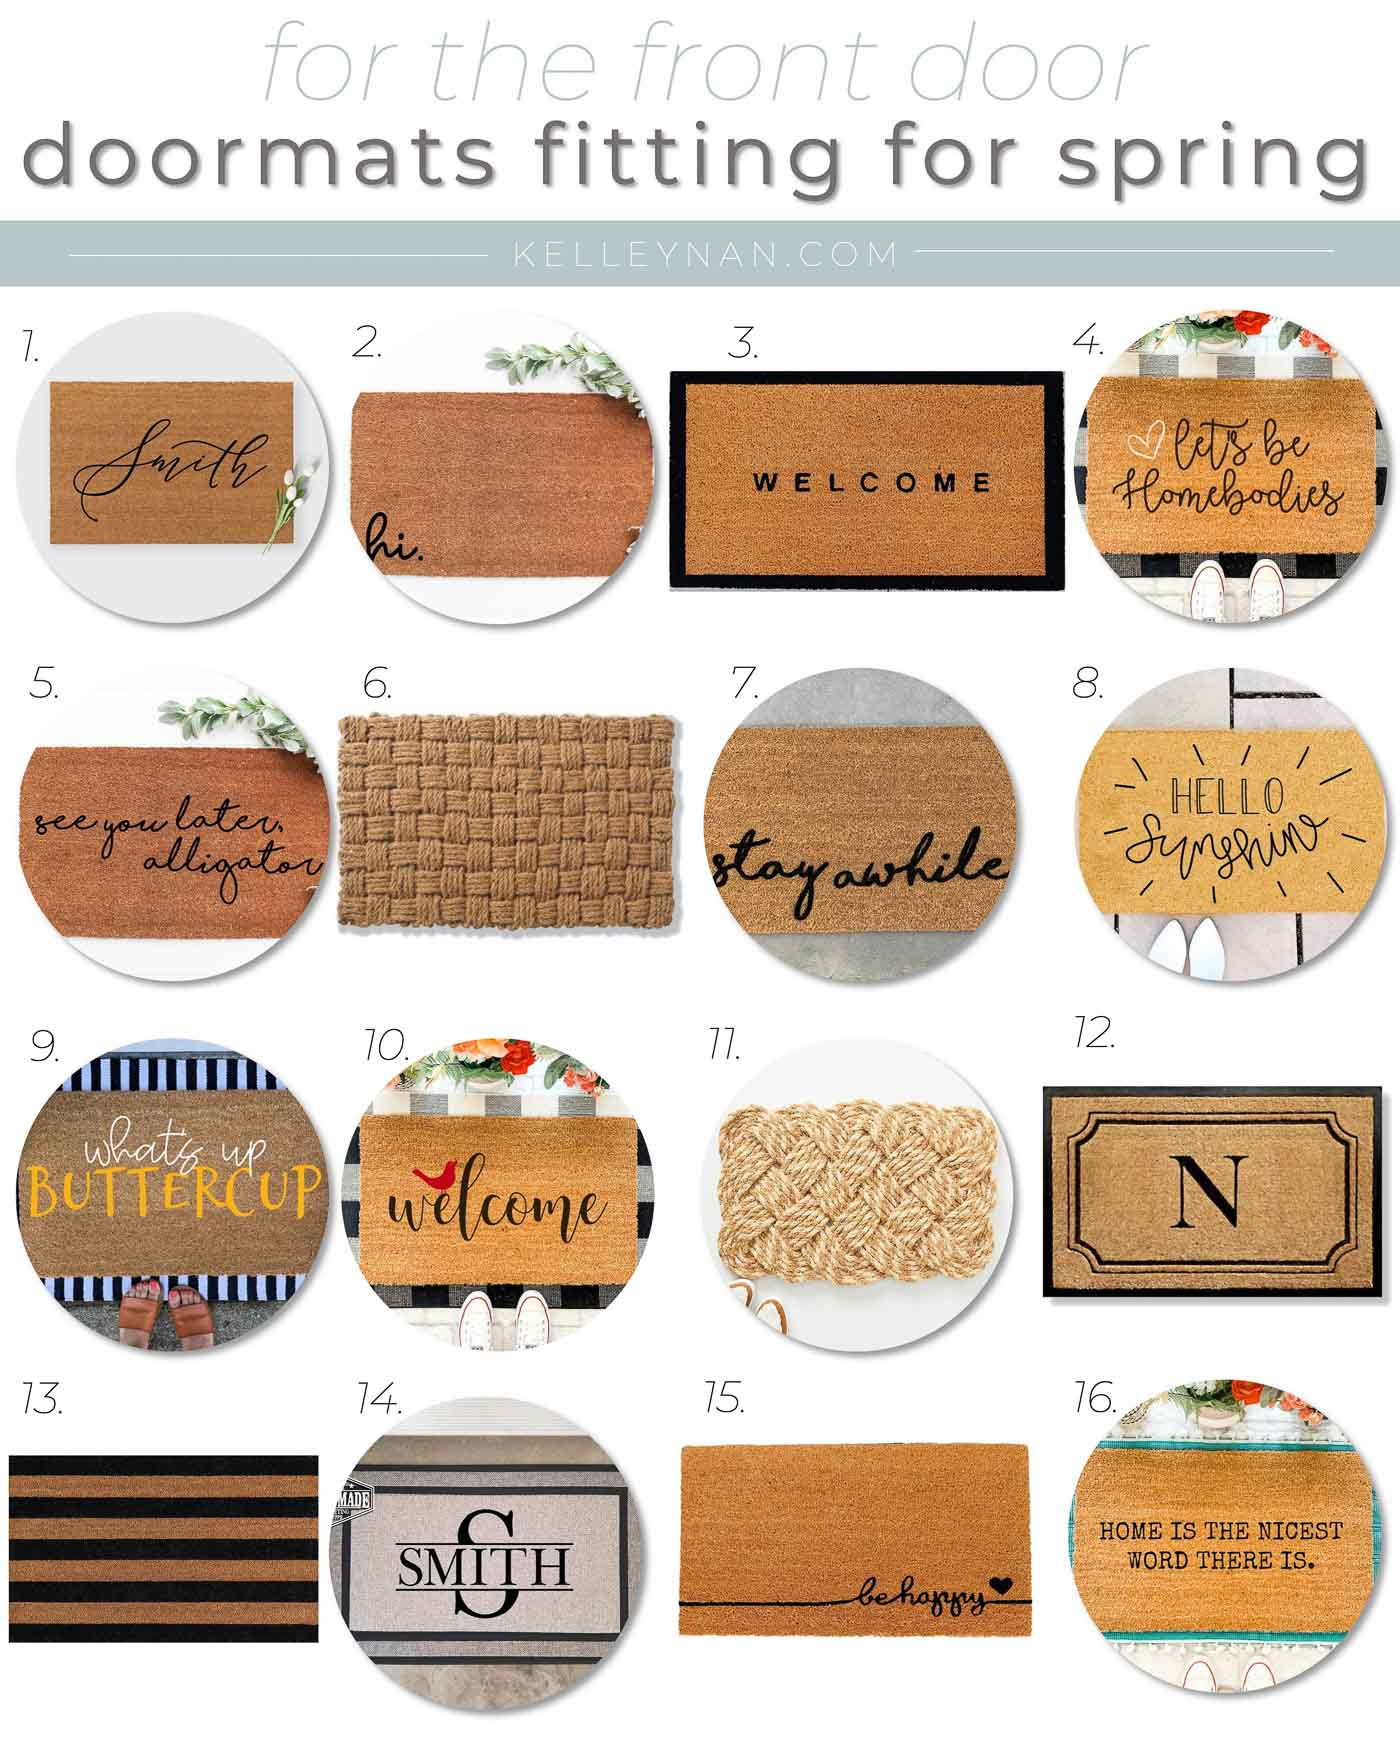 16 Doormats for the Front Door that are Perfect for Spring!